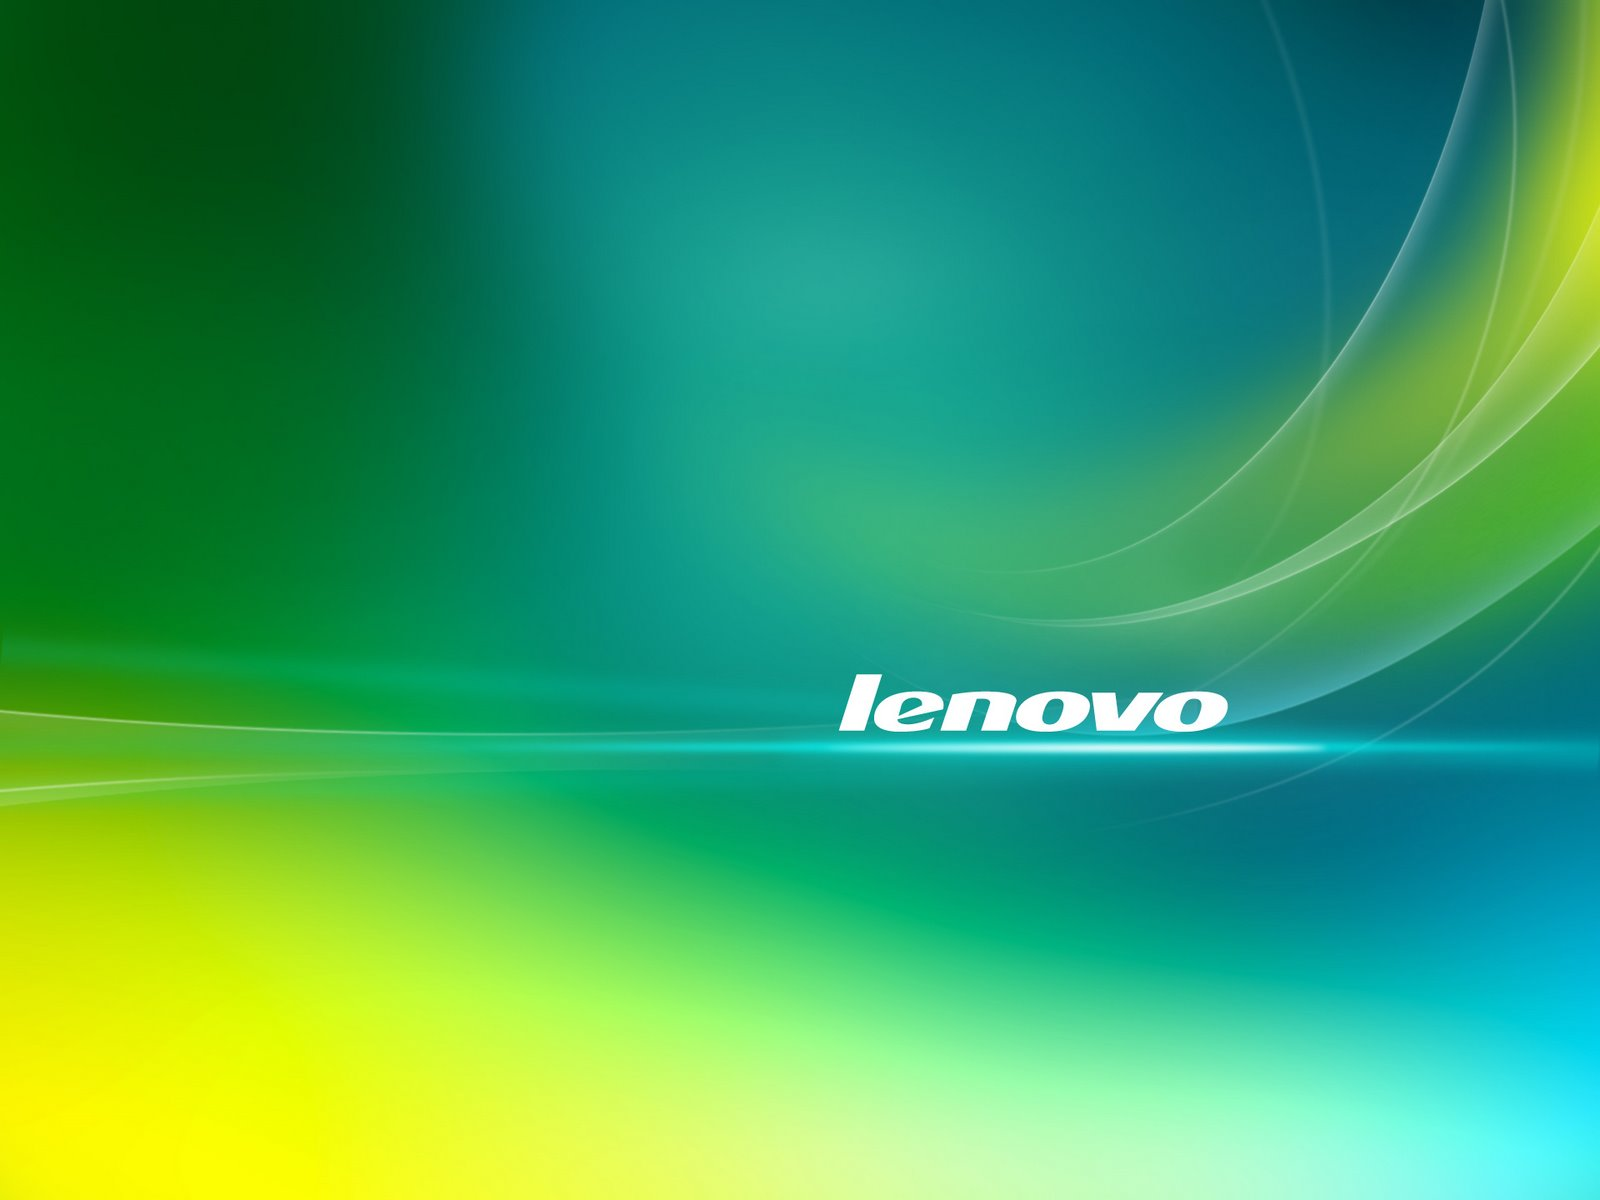 Lenovo Technology Free Desktop Wallpaper